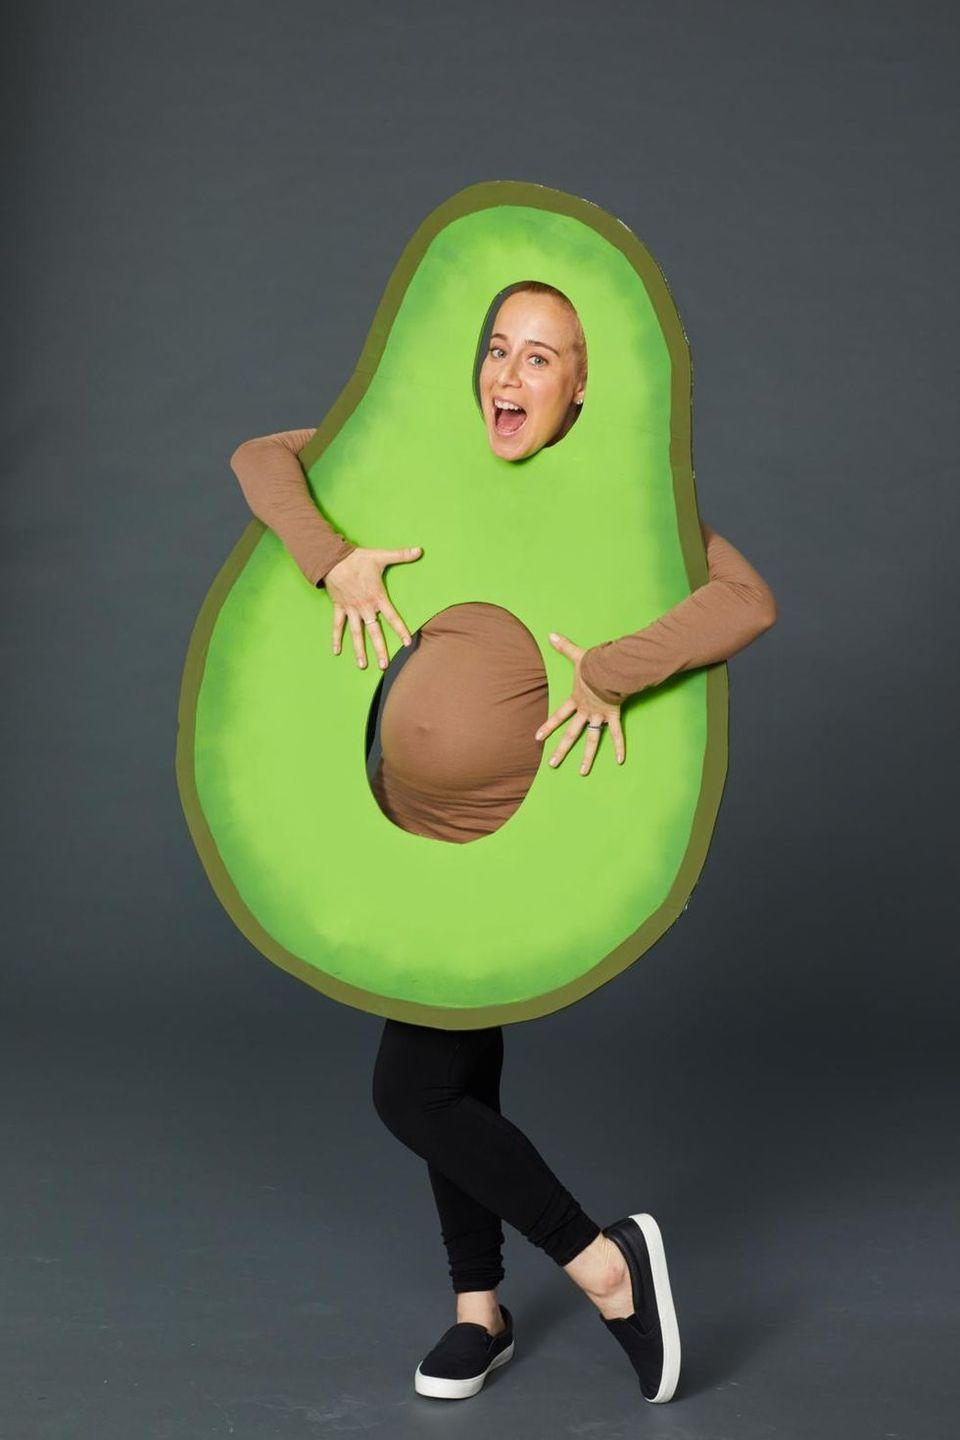 """<p>Put baby on full display with this super funny avocado costume that has a cutout in the center to show off the """"pit."""" It's an ode to your <a href=""""https://www.prevention.com/food-nutrition/healthy-eating/g20451824/5-clean-eating-avocado-desserts/"""" rel=""""nofollow noopener"""" target=""""_blank"""" data-ylk=""""slk:favorite fruit"""" class=""""link rapid-noclick-resp"""">favorite fruit</a> that knows a thing or two about ripening at its own pace. </p><p><a class=""""link rapid-noclick-resp"""" href=""""https://www.amazon.com/Amoretu-Women-Tshirt-Sleeve-Cotton/dp/B07G46V28F/?tag=syn-yahoo-20&ascsubtag=%5Bartid%7C2141.g.33469434%5Bsrc%7Cyahoo-us"""" rel=""""nofollow noopener"""" target=""""_blank"""" data-ylk=""""slk:SHOP LONG-SLEEVE"""">SHOP LONG-SLEEVE</a></p><p><a href=""""https://www.goodhousekeeping.com/holidays/halloween-ideas/g29230766/best-food-costumes/"""" rel=""""nofollow noopener"""" target=""""_blank"""" data-ylk=""""slk:Get the tutorial at Good Housekeeping »"""" class=""""link rapid-noclick-resp""""><em>Get the tutorial at Good Housekeeping »</em></a></p>"""